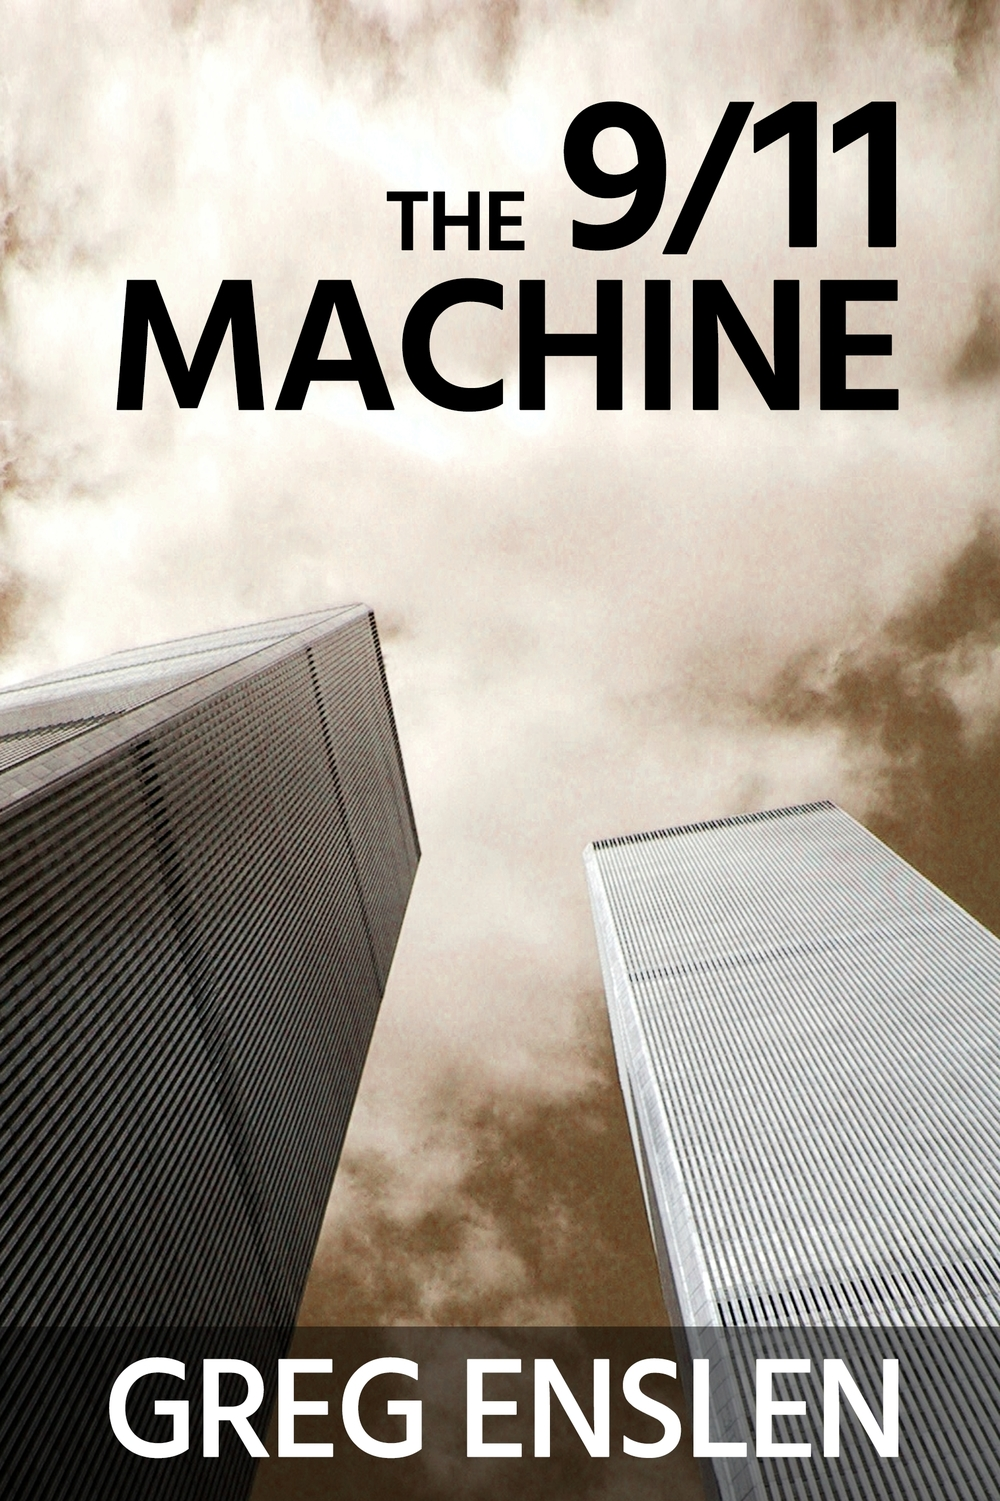 """The 9/11 Machine"" with new cover design. Ain't it sweet? Thanks, Pam!"